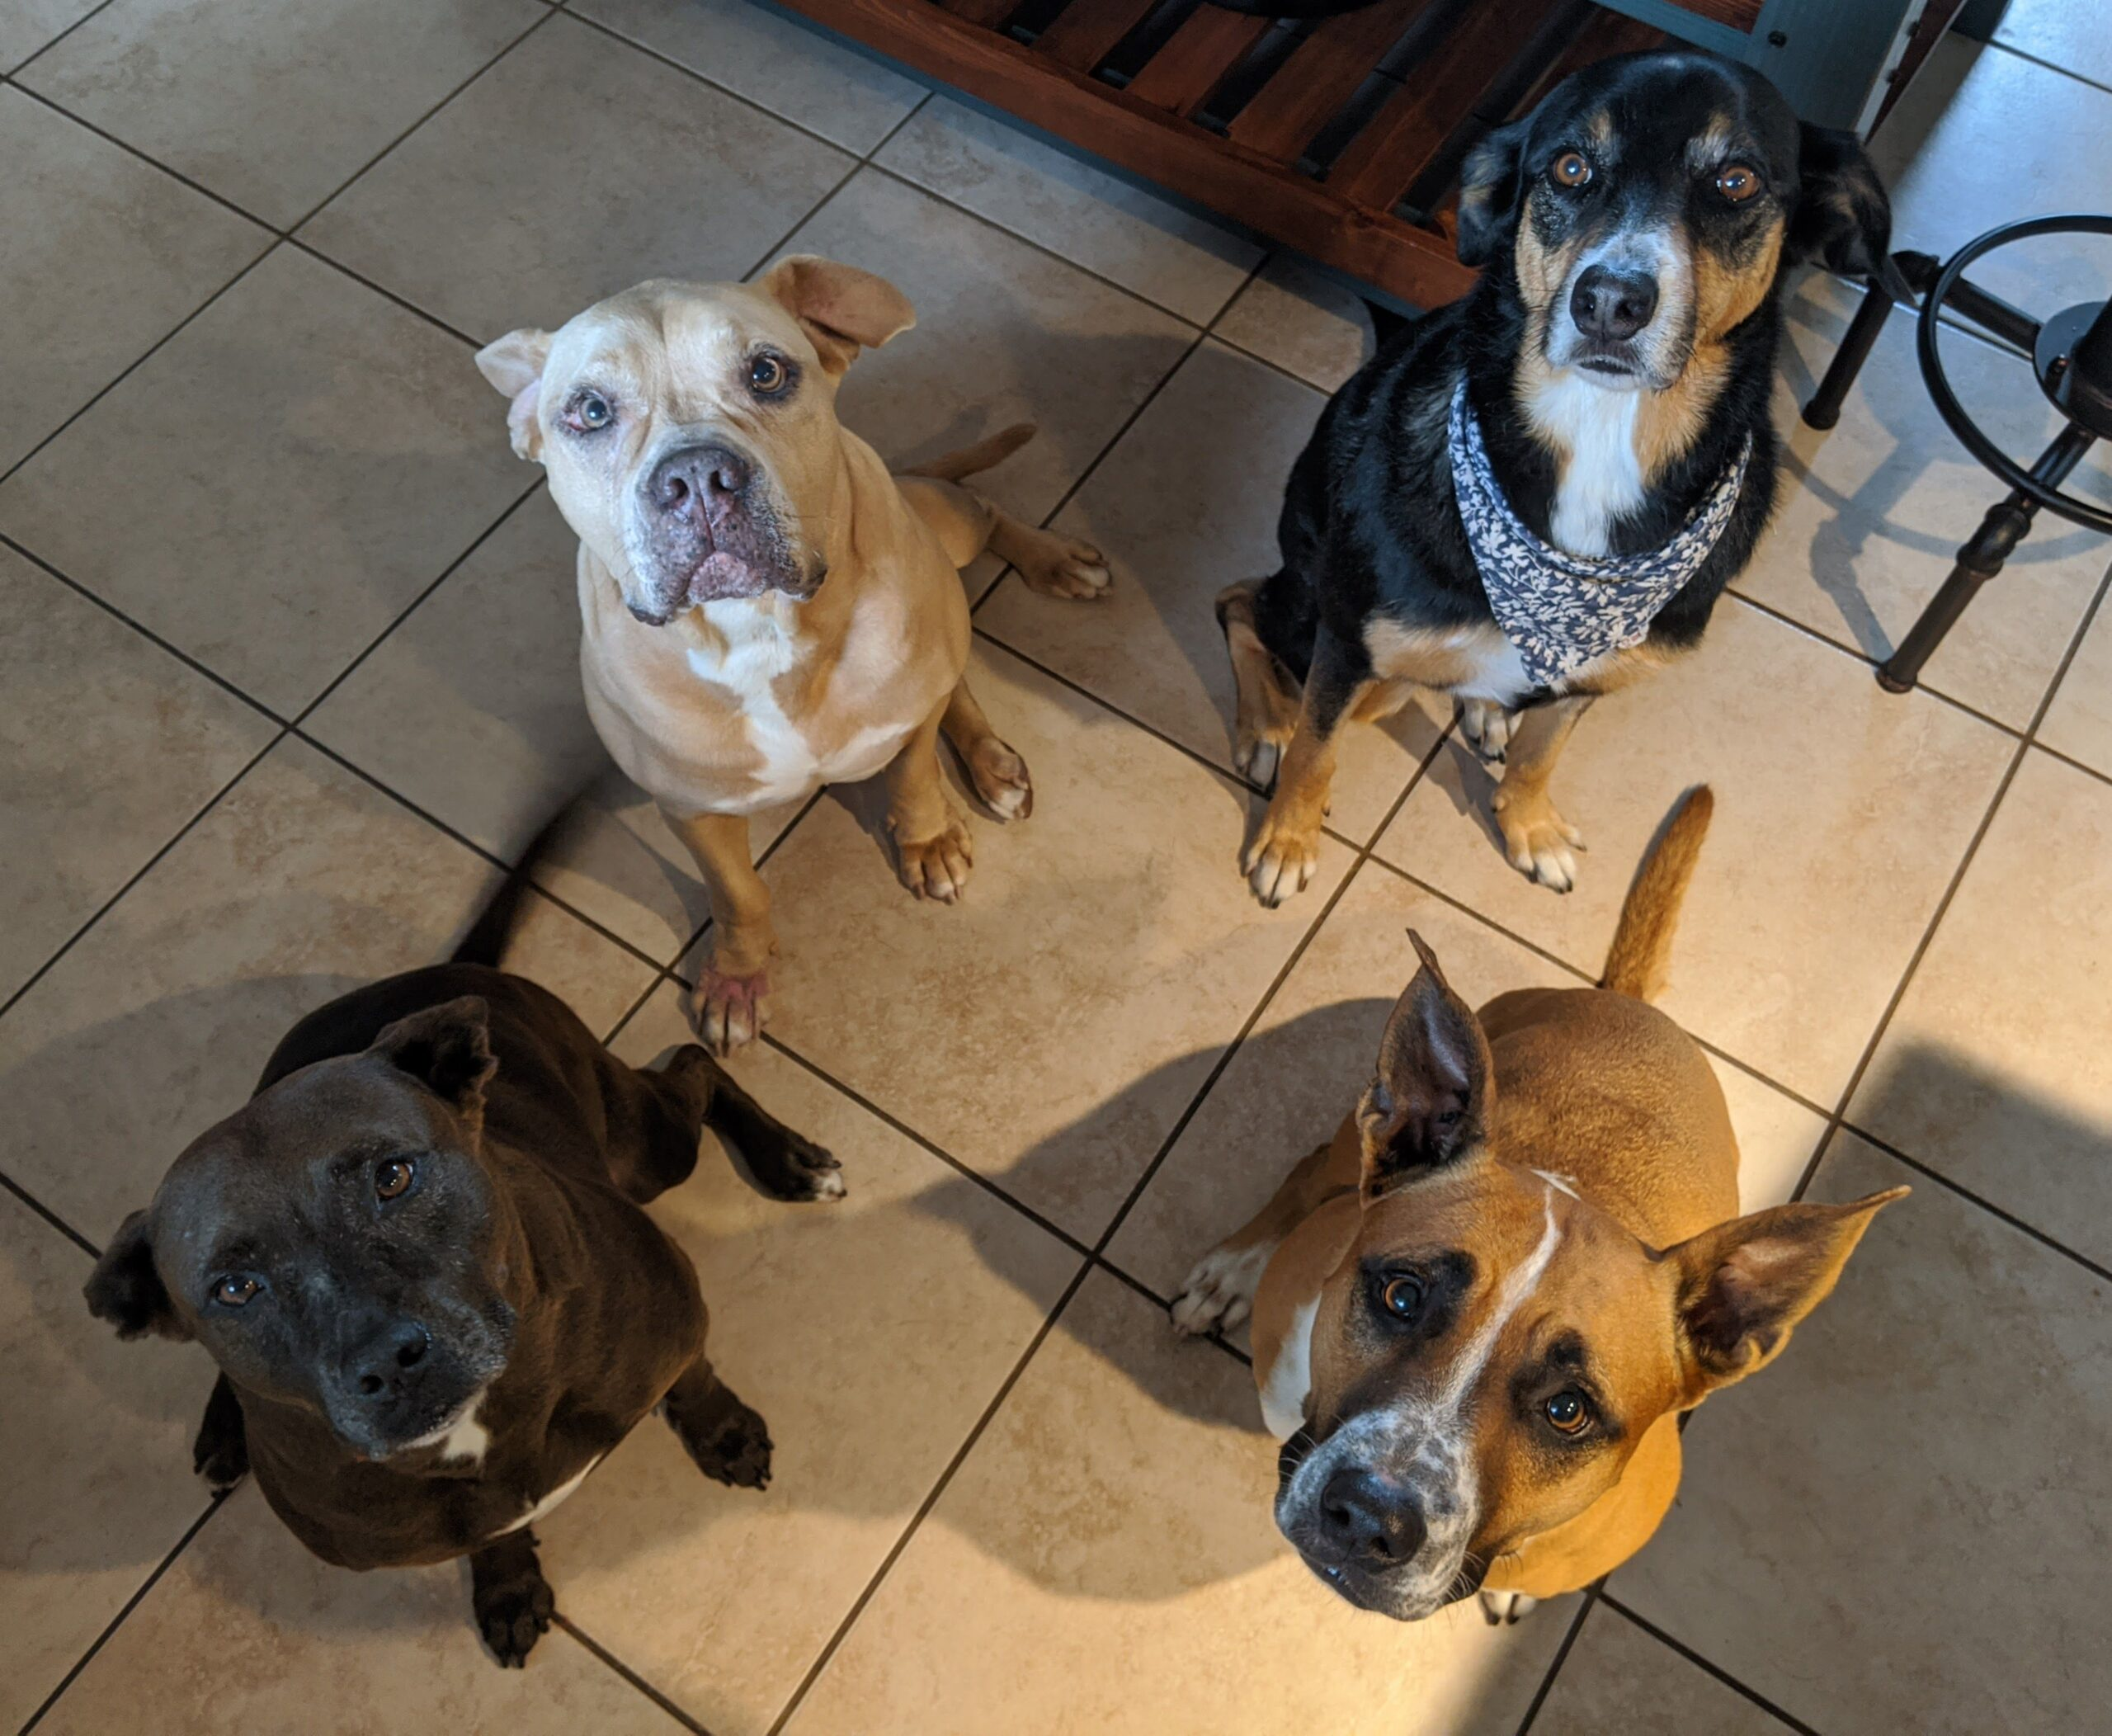 4 dogs looking up at the camera